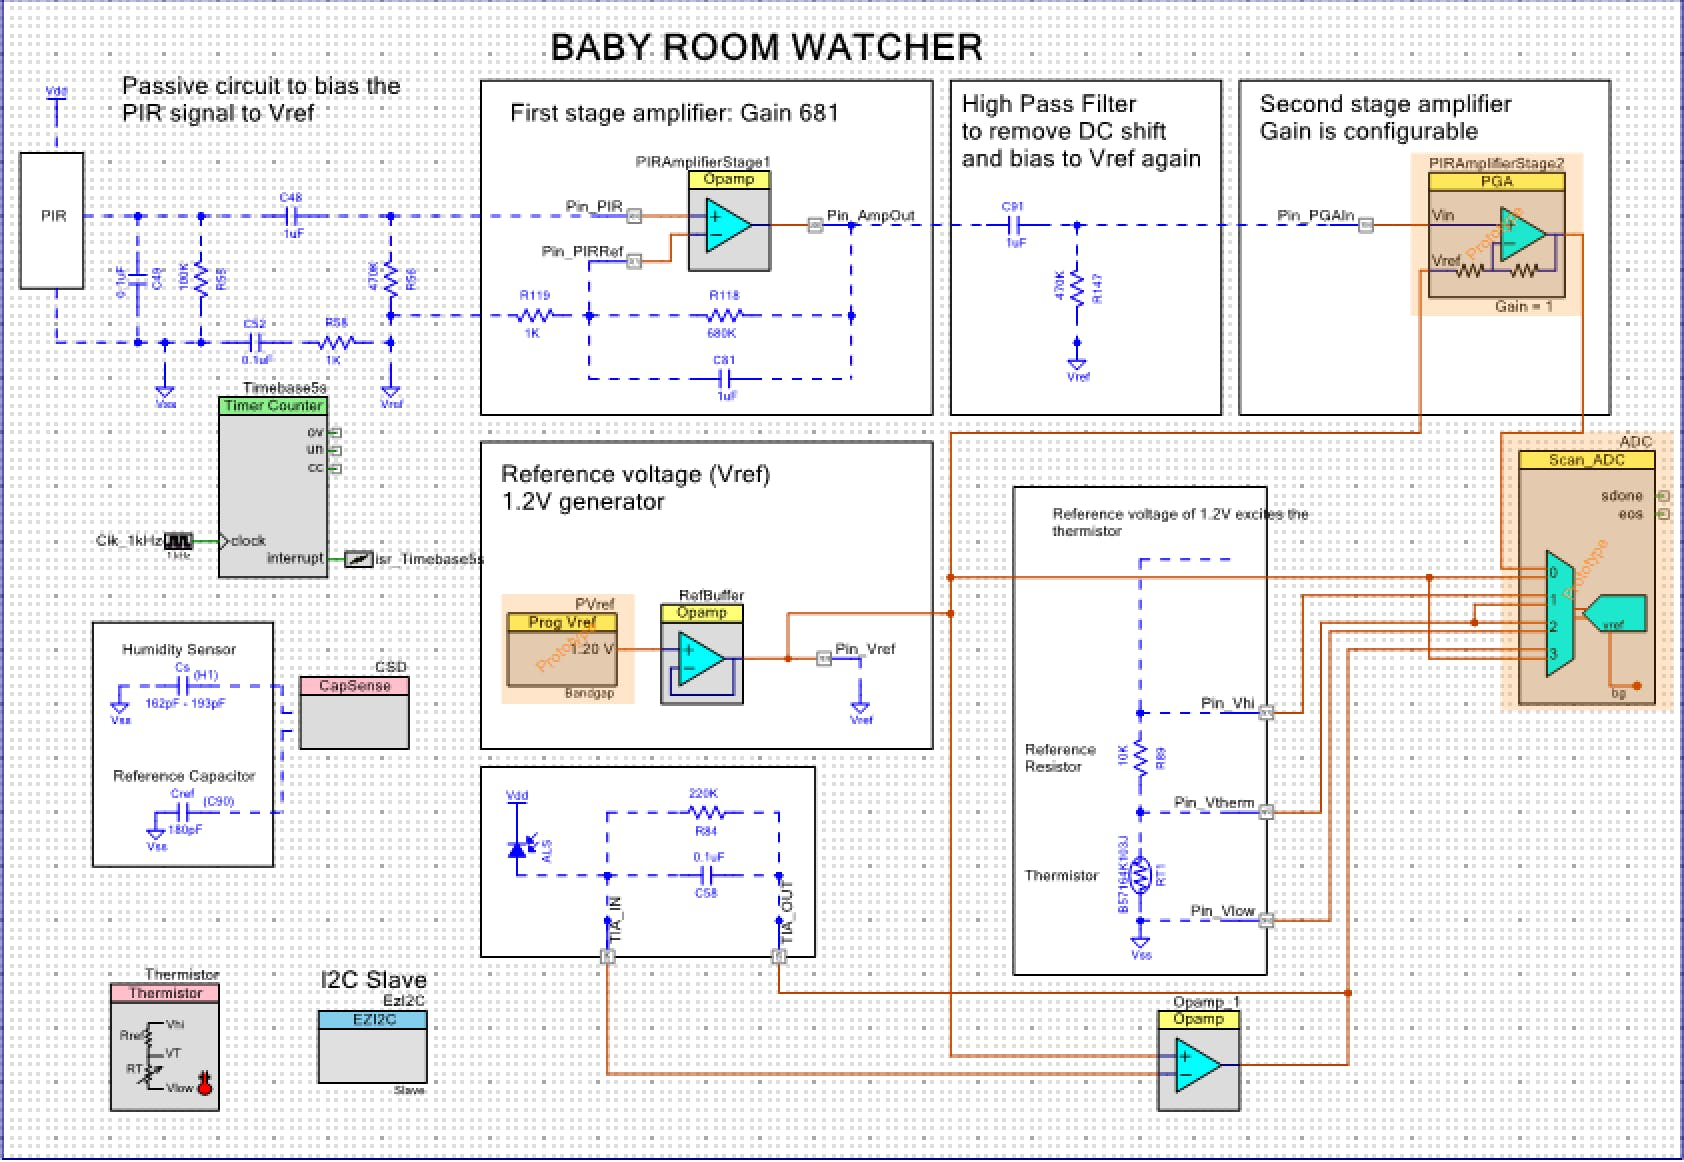 Baby Room Watcher Design